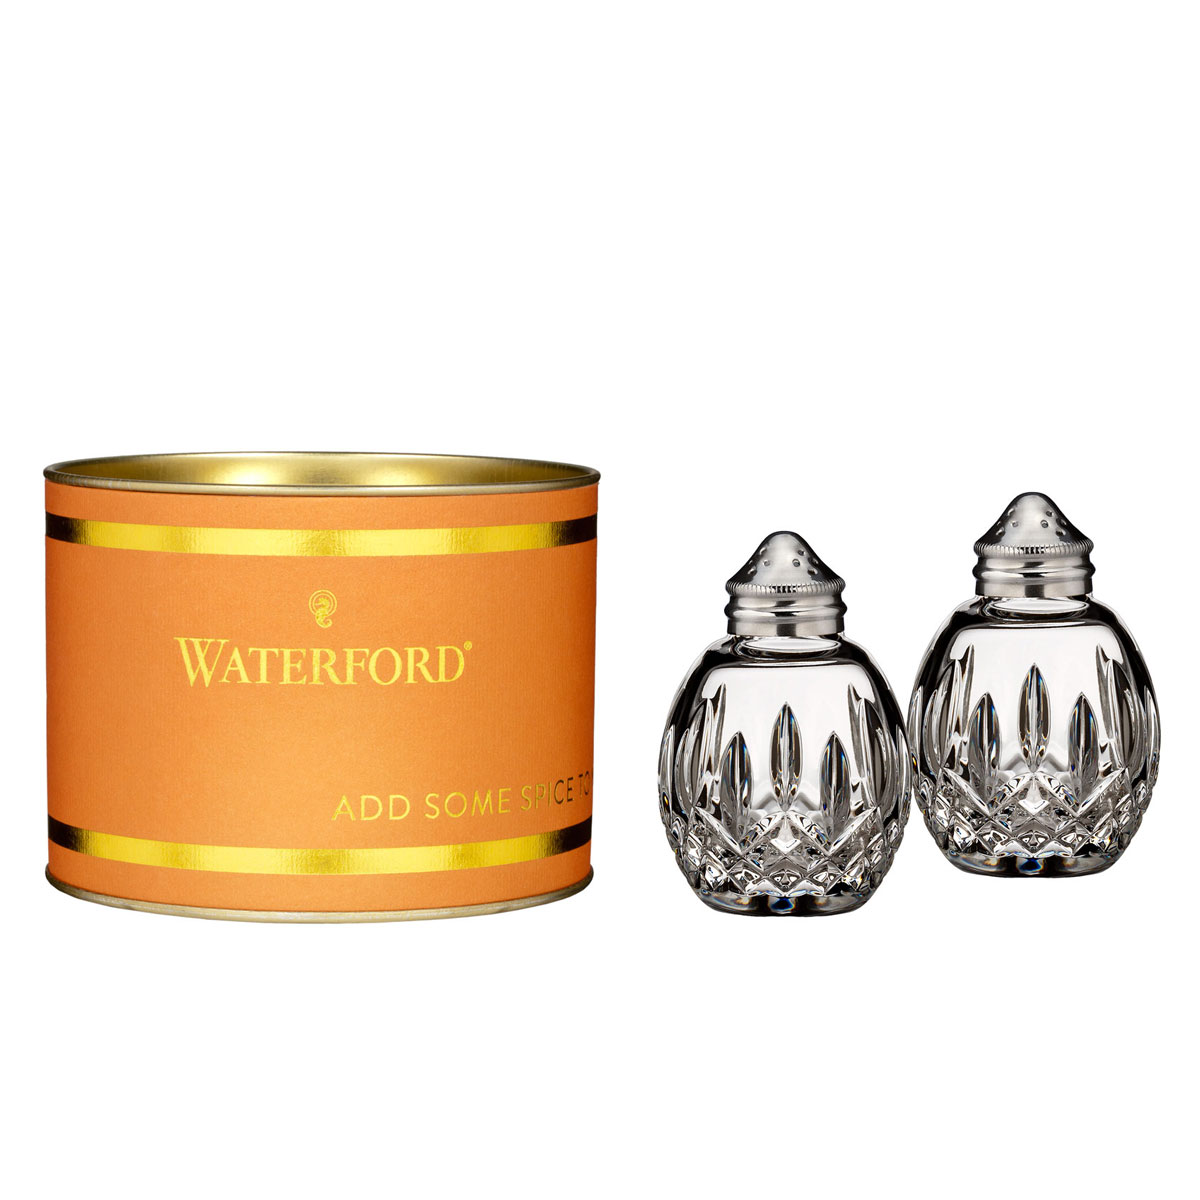 Waterford Giftology Lismore Round Crystal Salt and Pepper Set